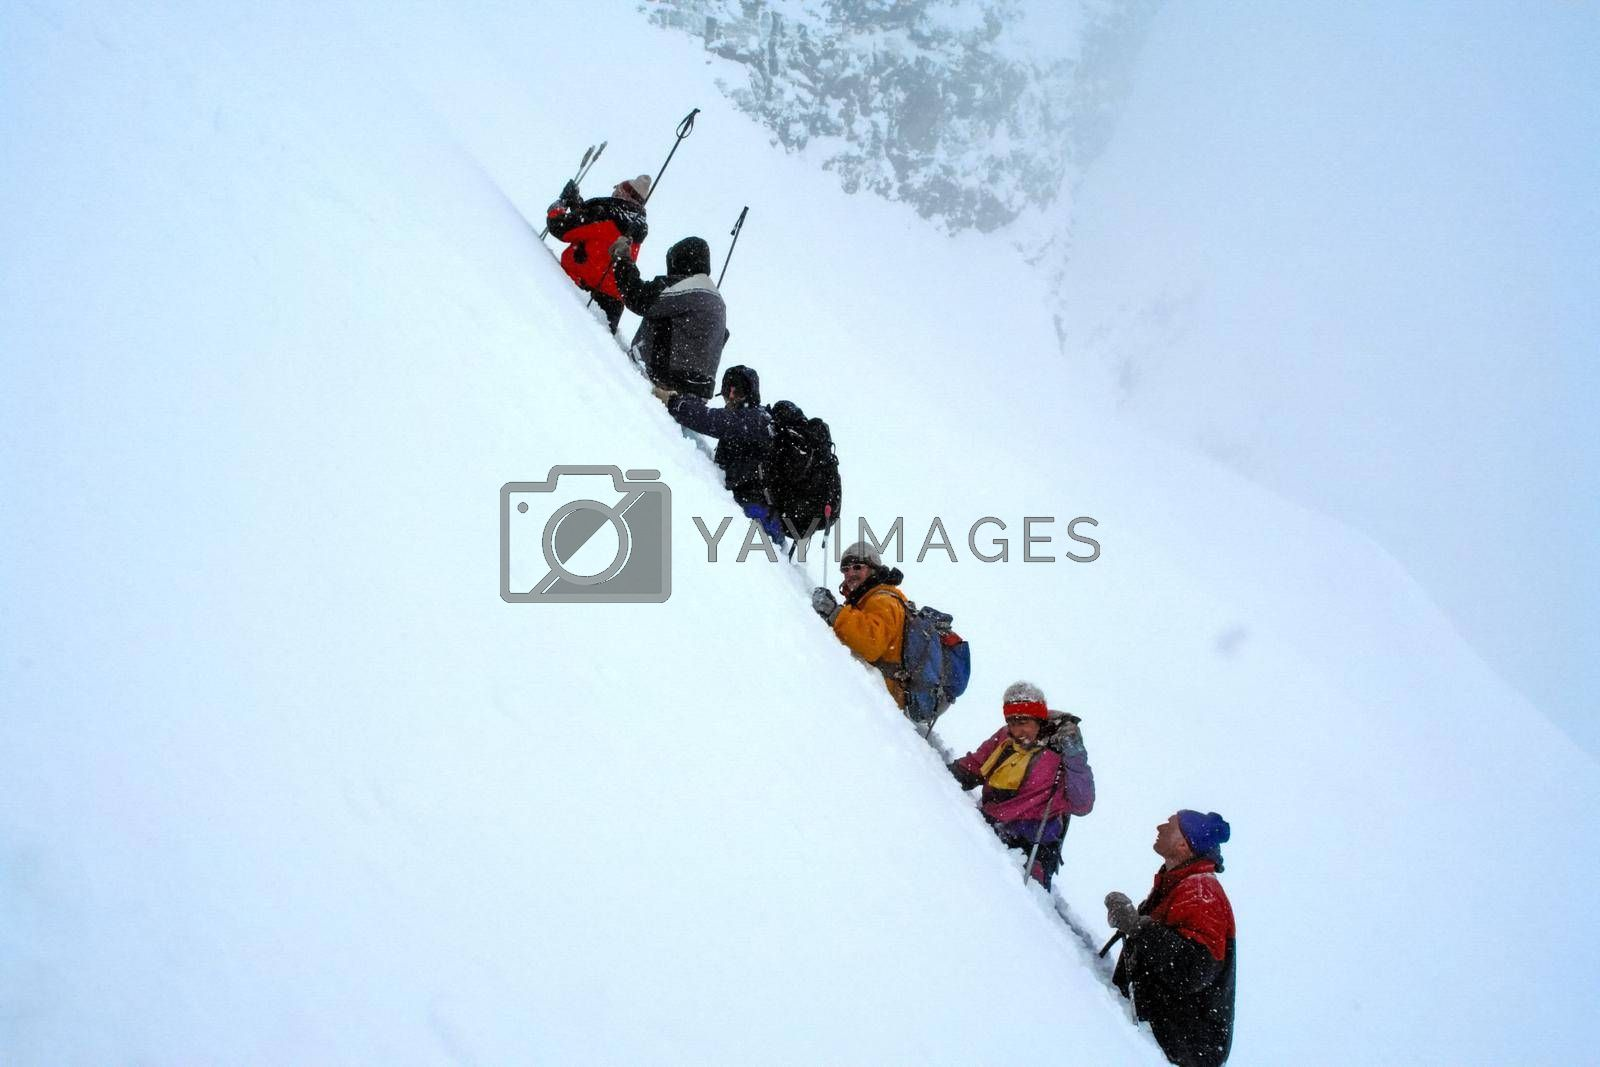 Tankhoy, Russia - January 20, 2019: A company of skiers in the mountains in the snow. Skiing.